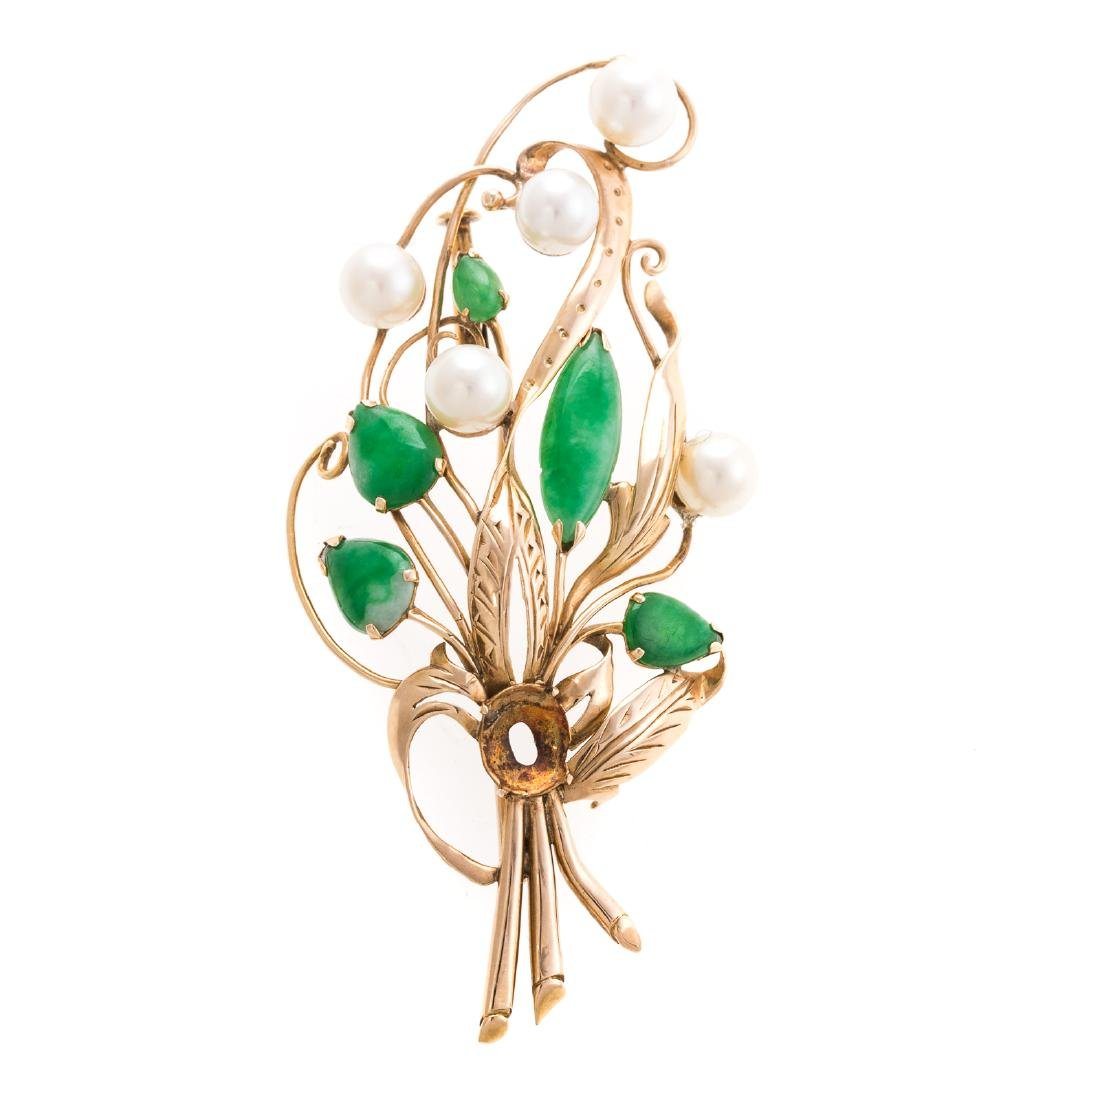 A Lady's 14K Jade and Pearl Floral Pin